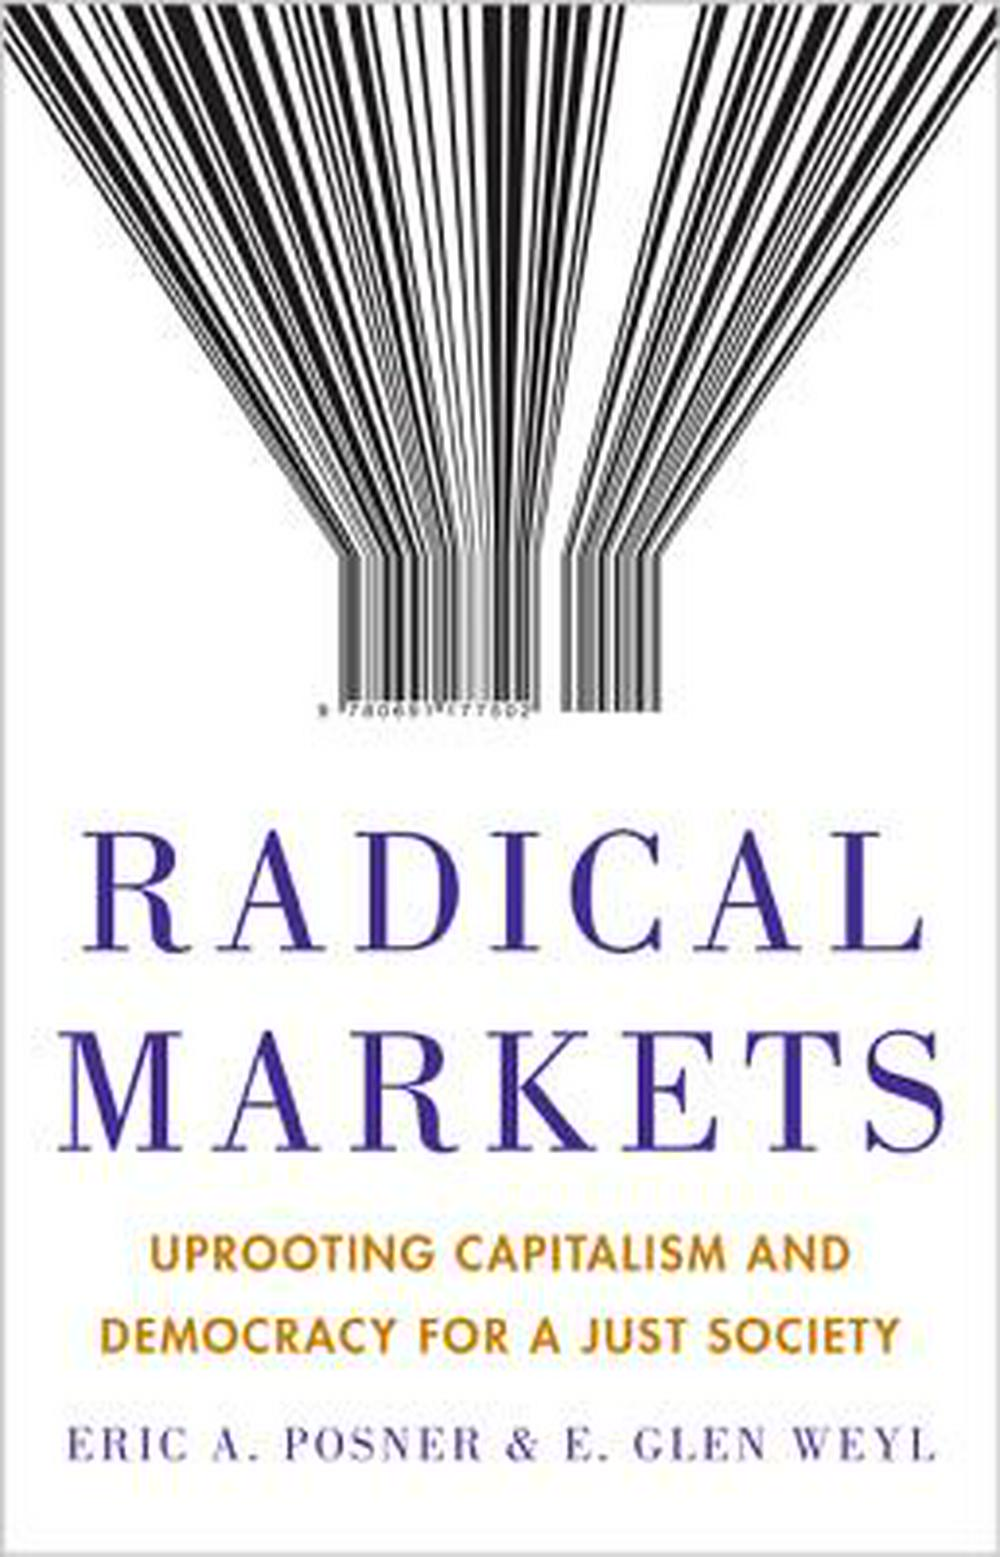 Radical MarketsWhy We Should Upend Property and Democracy for ...